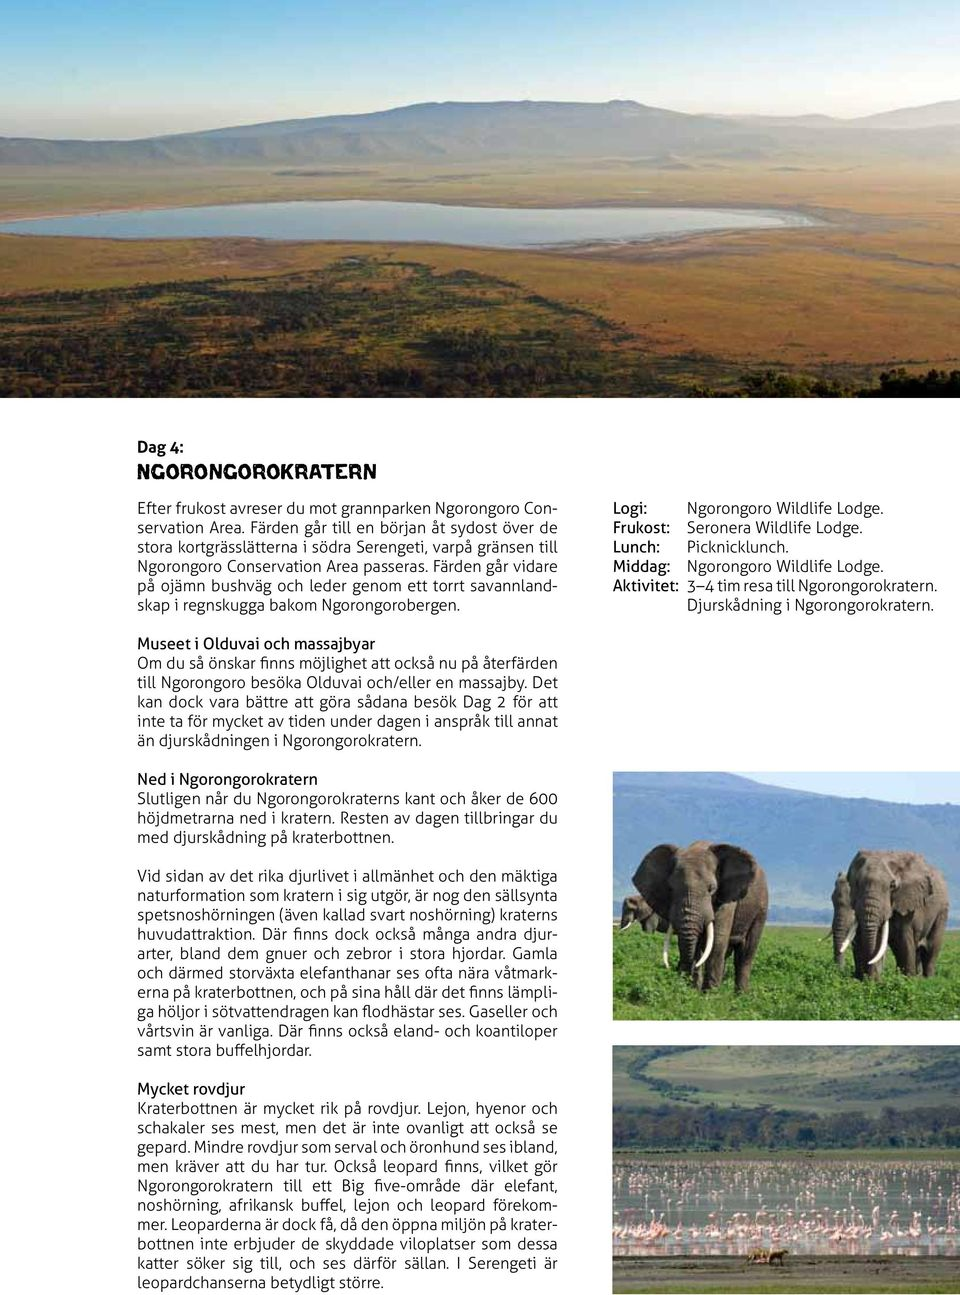 Färden går vidare på ojämn bushväg och leder genom ett torrt savannlandskap i regnskugga bakom Ngorongorobergen. Logi: Ngorongoro Wildlife Lodge. Frukost: Seronera Wildlife Lodge.